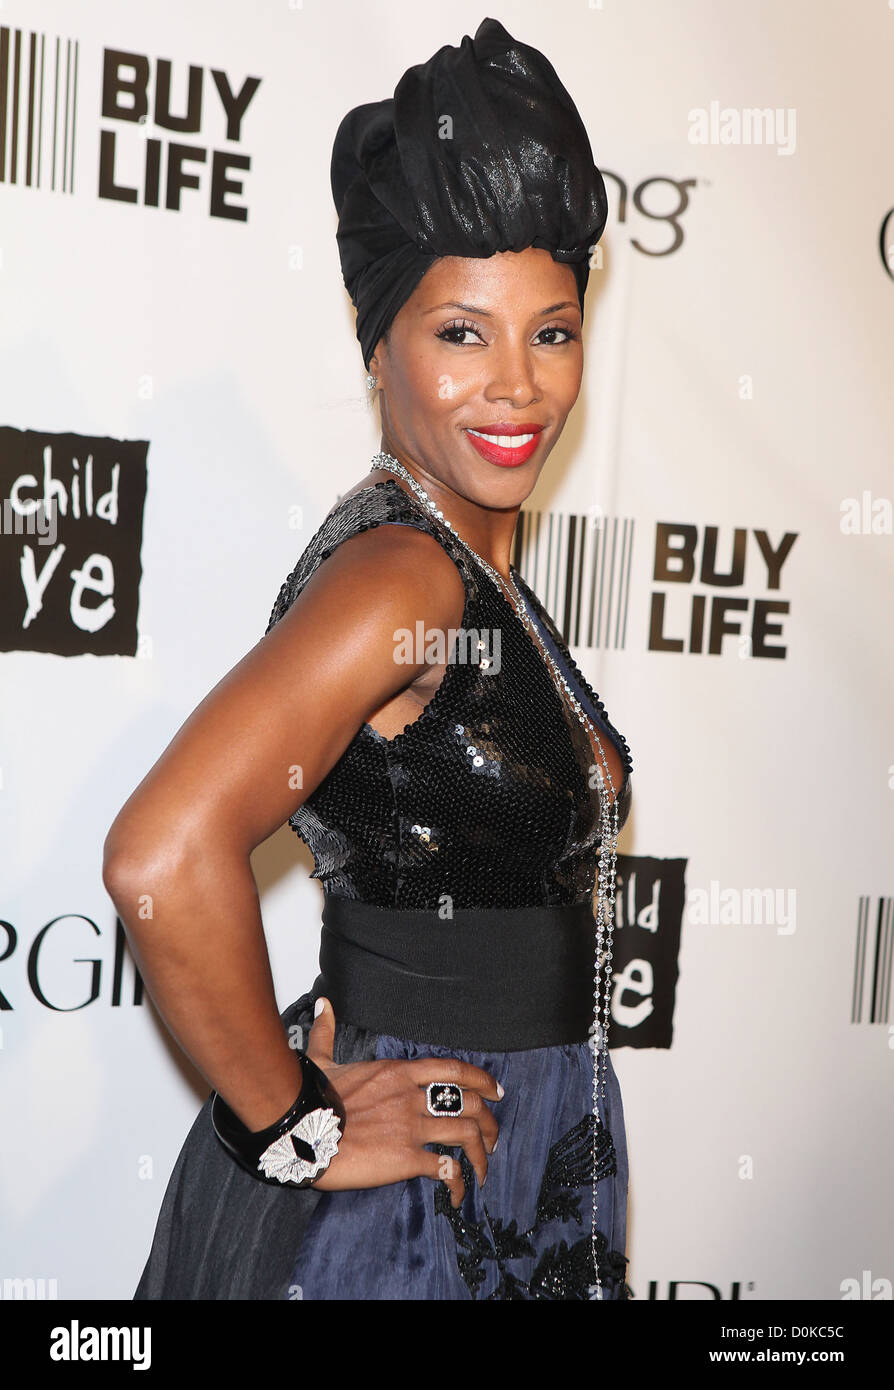 June Ambrose The 2010 'Keep A Child Alive' Black Ball held at the Hammerstein Ballroom - Arrivals New York City, Stock Photo